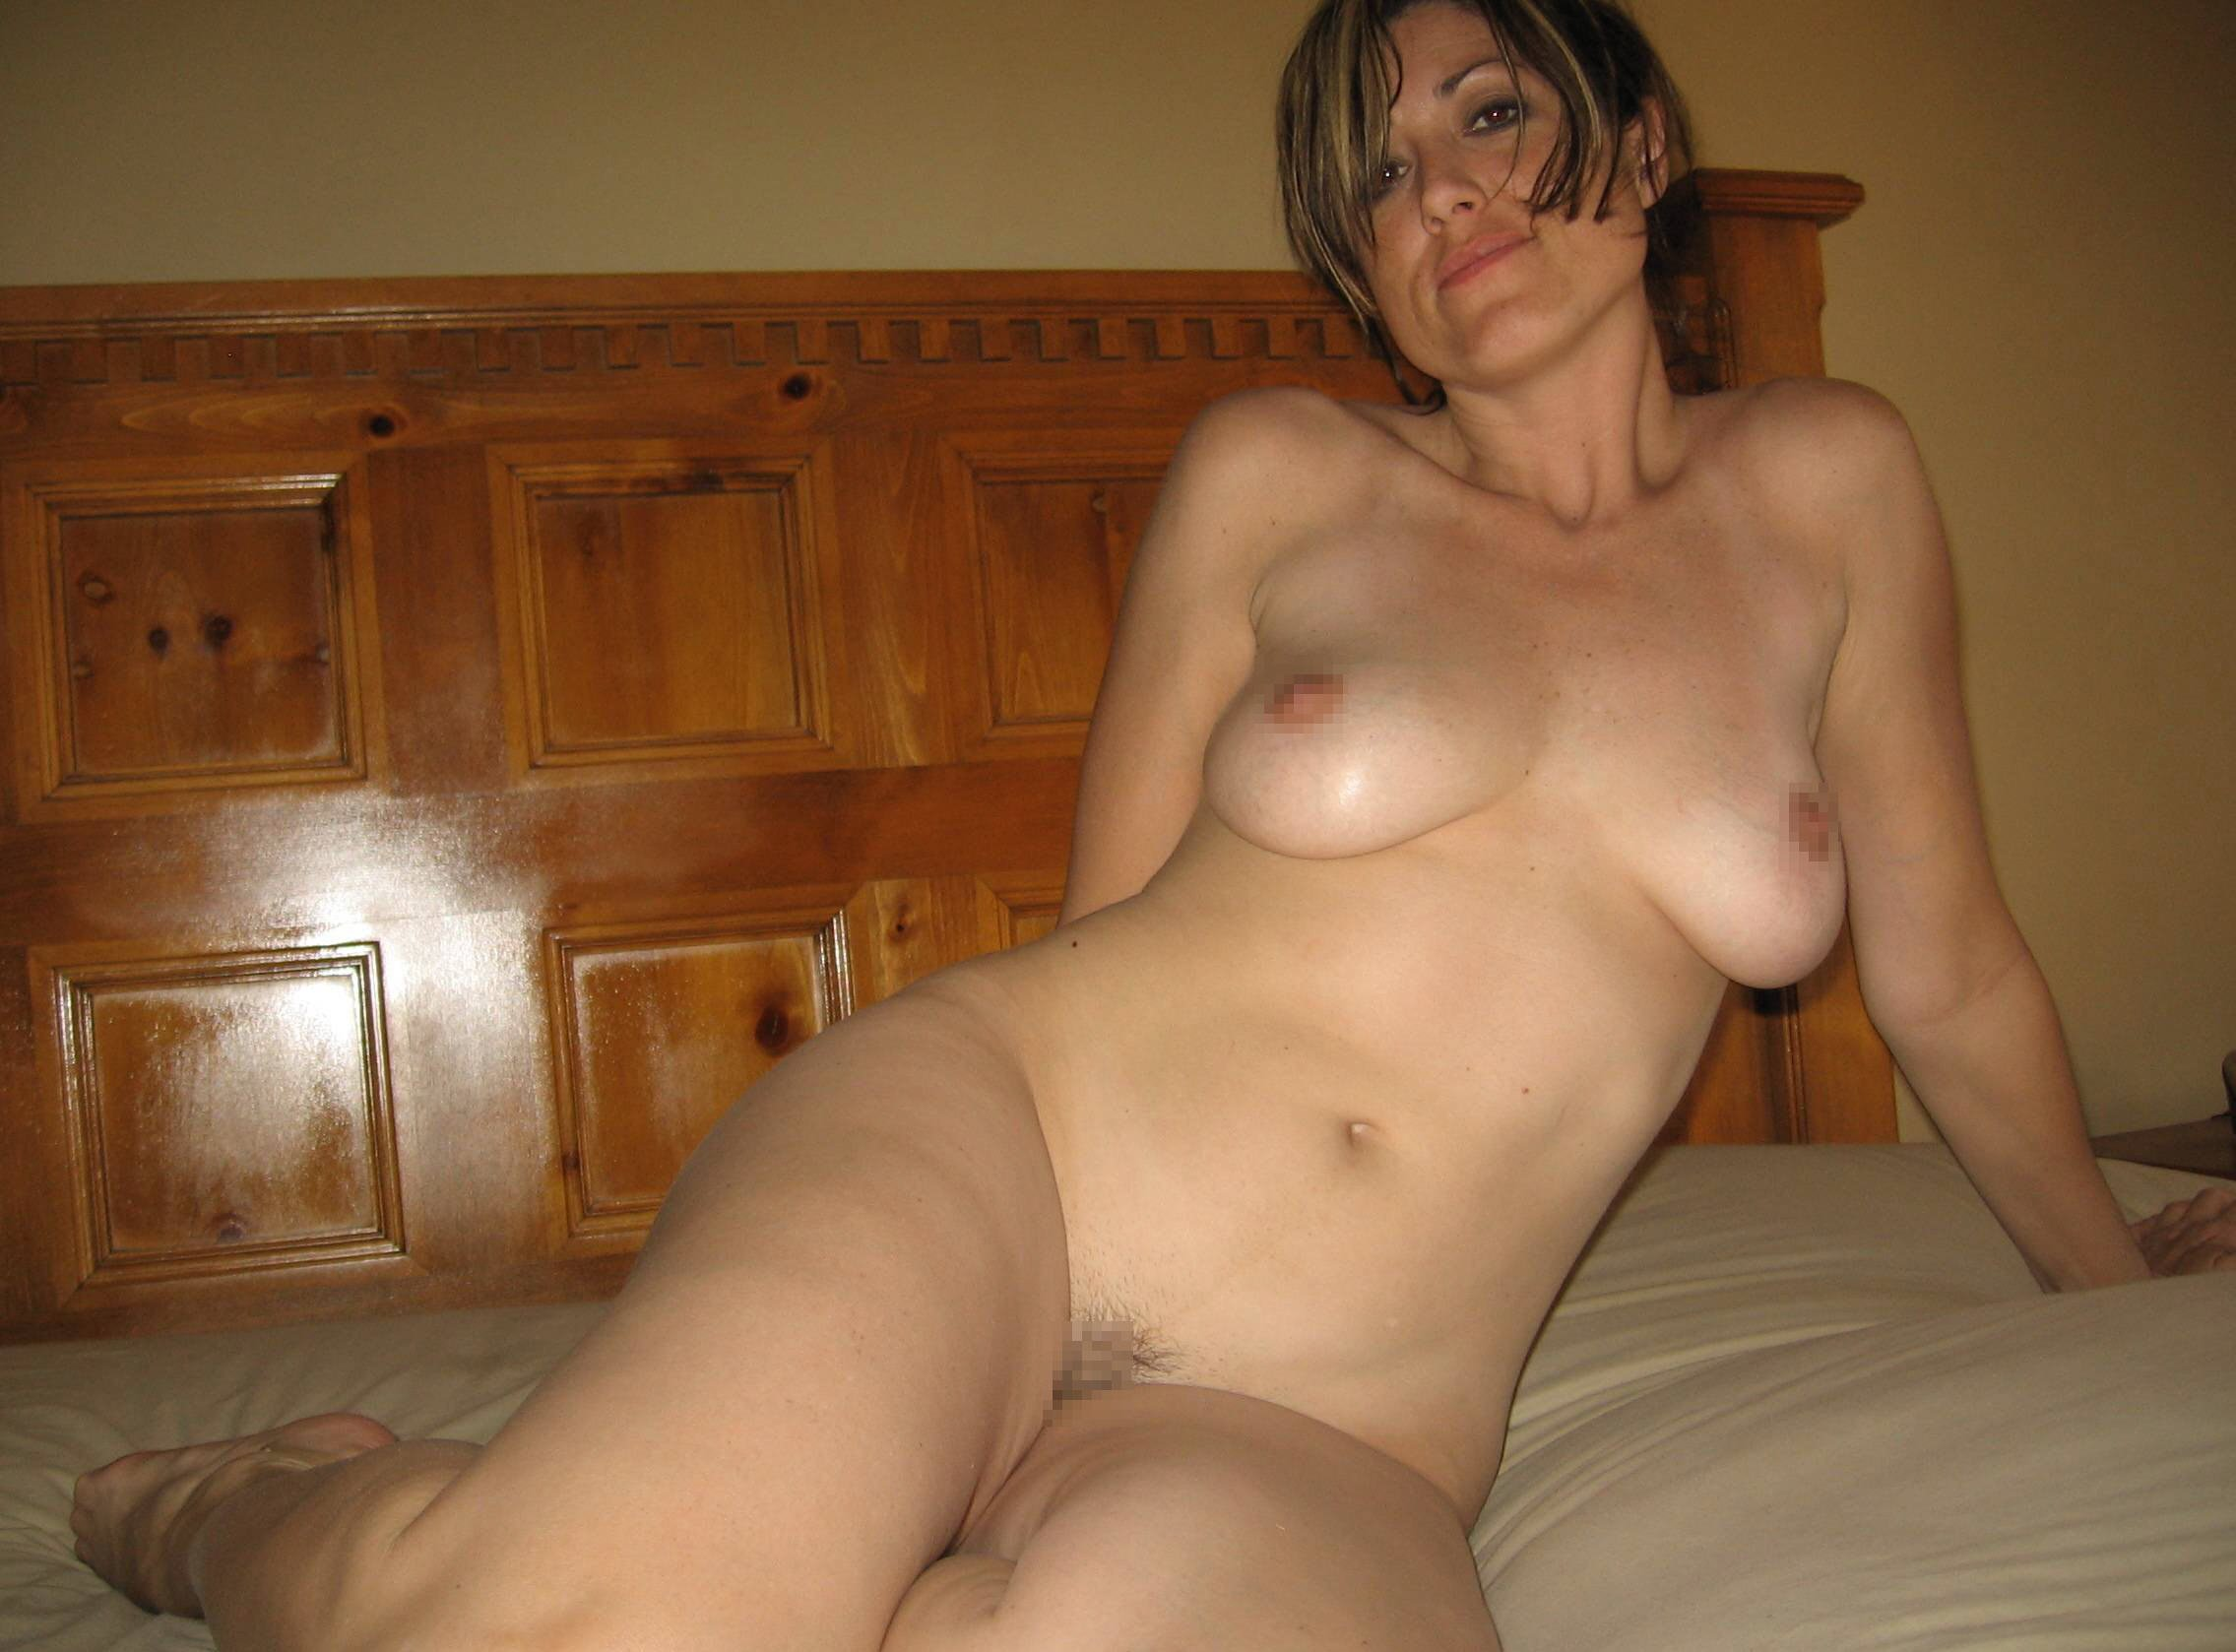 Erotic amateur adult